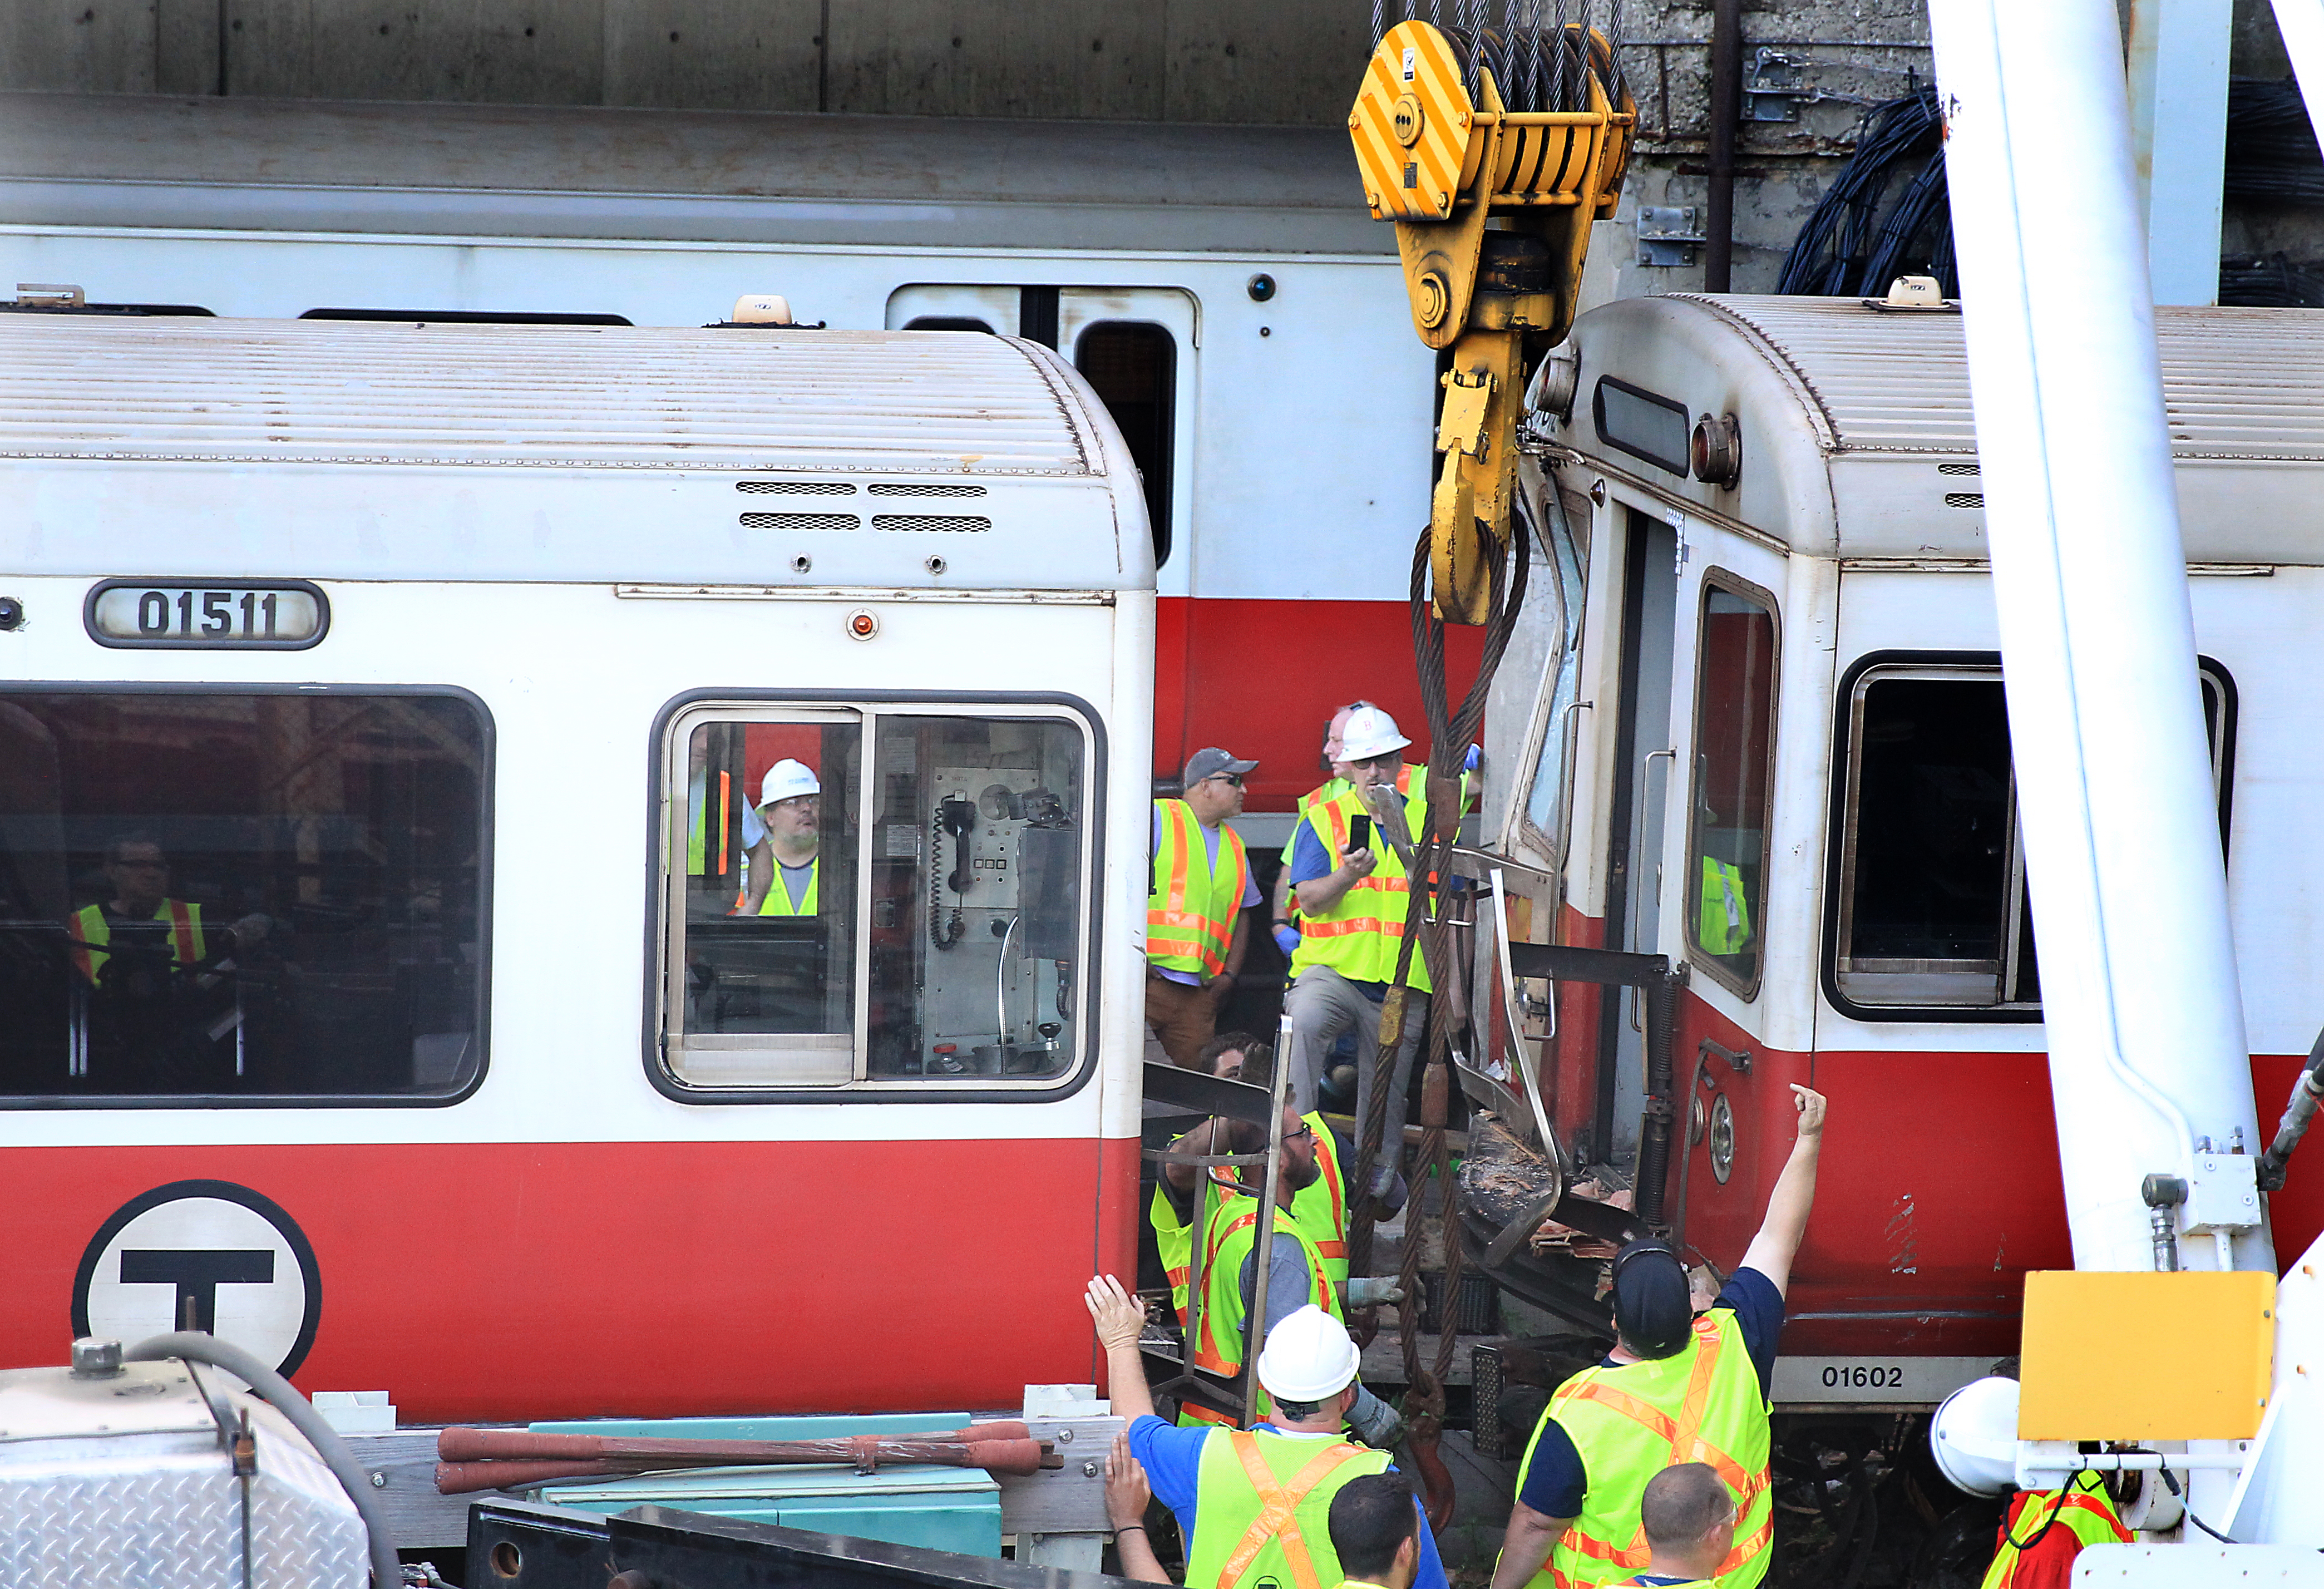 MBTA among nation's worst for derailments, records show